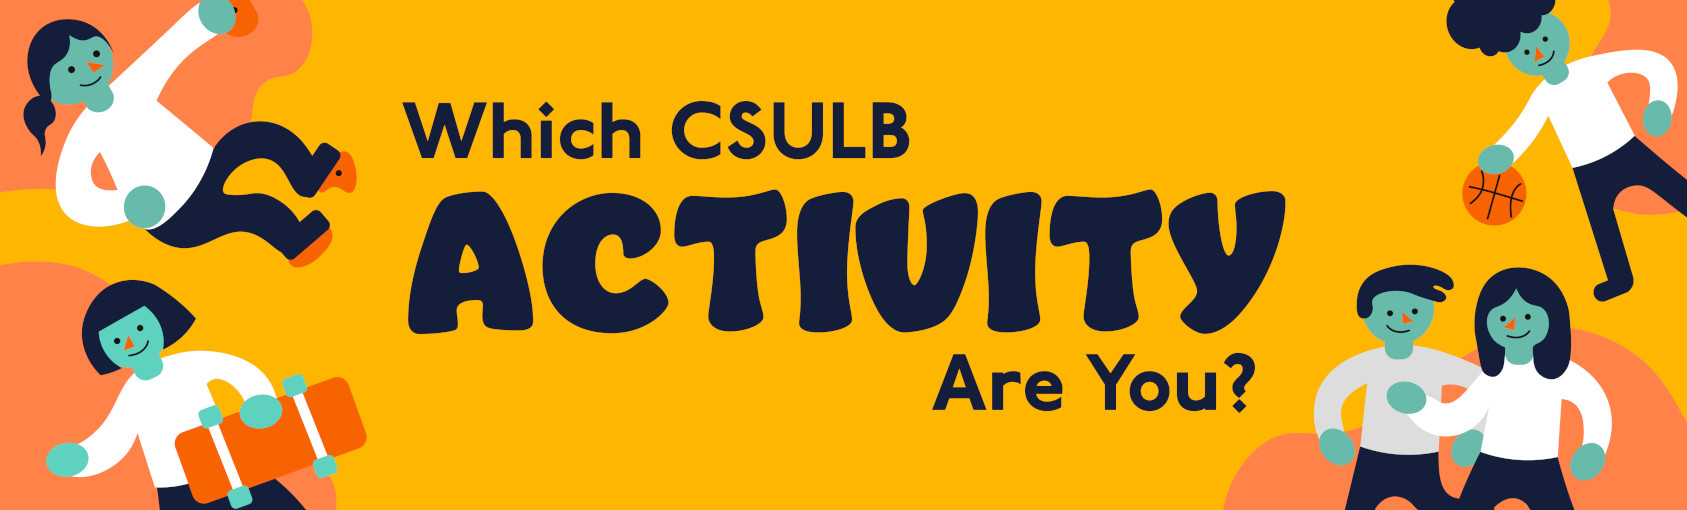 Quiz: Which CSULB Activity Are You? banner